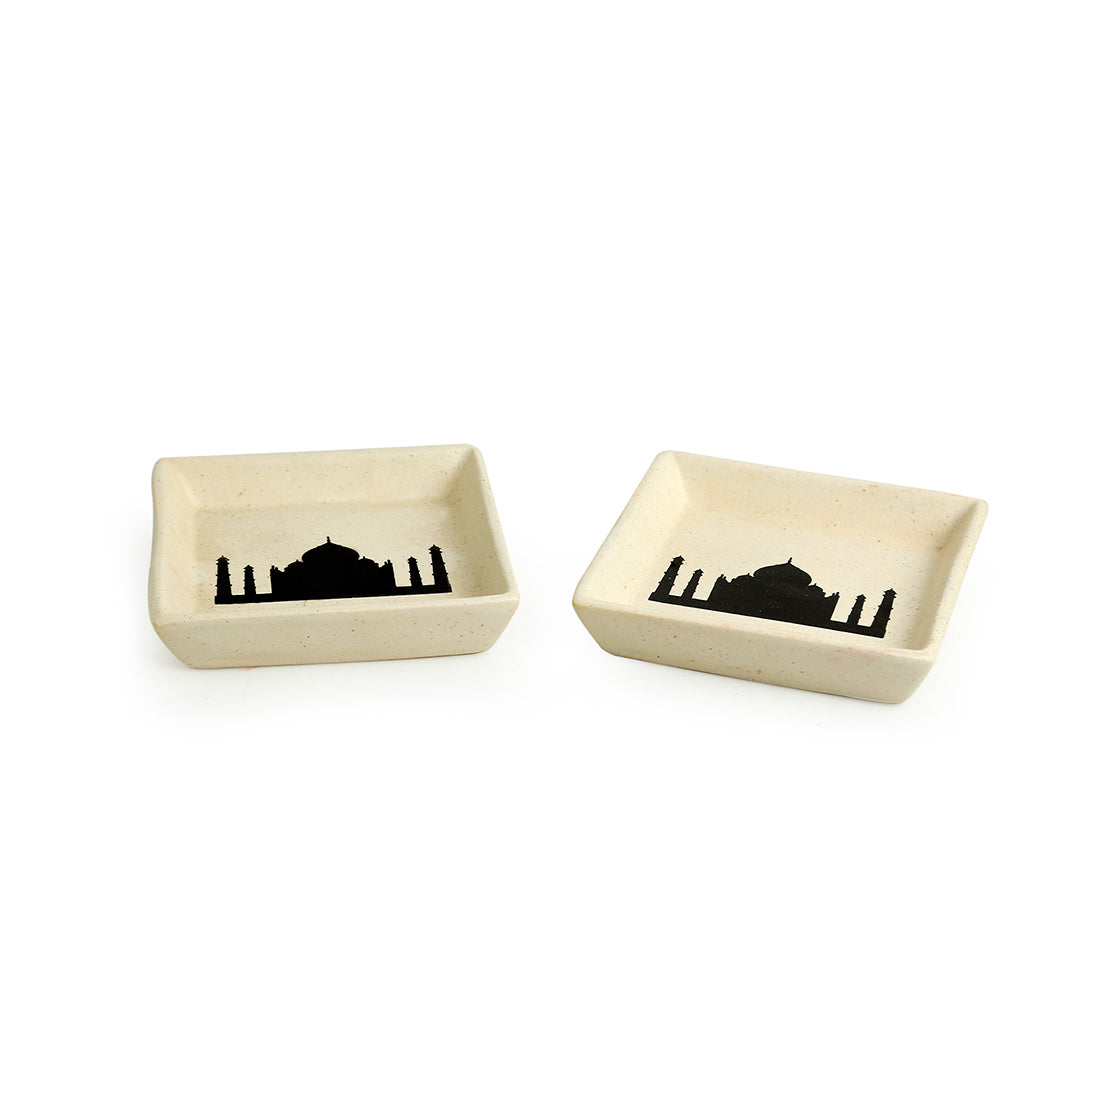 'Daawat-e-Taj' Handcrafted Ceramic Snacks Serving Platters (Small) (Set of 2, Microwave Safe)